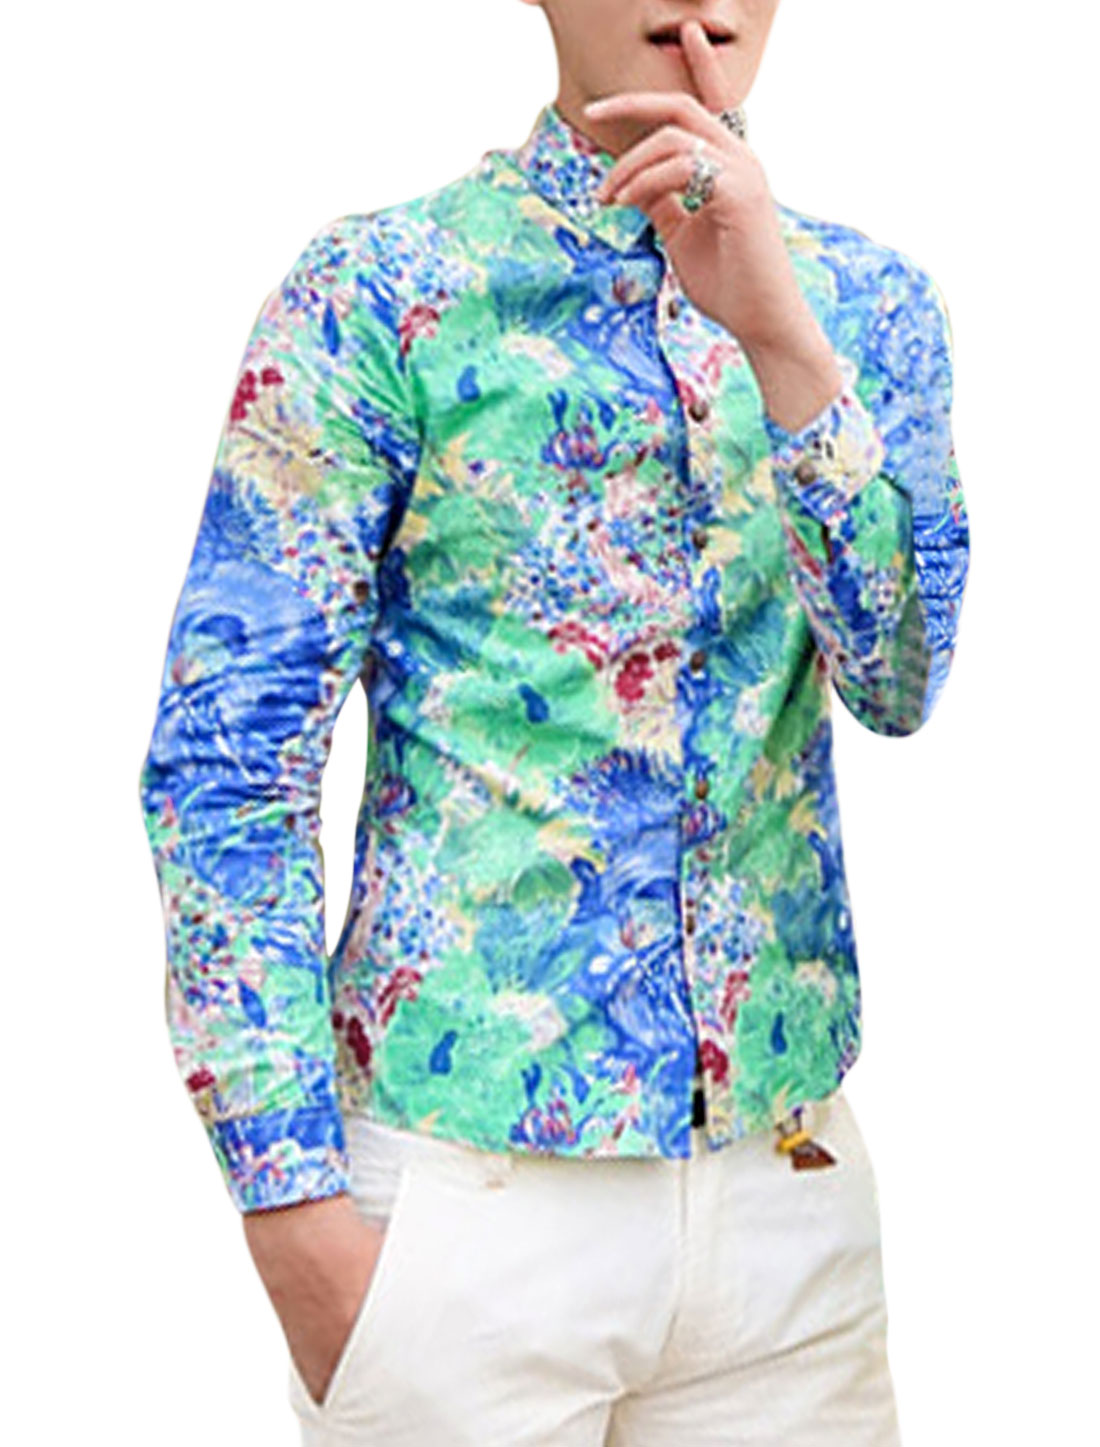 Men New Fashion Allover Flower Print Single Breasted Round Hem Shirt Blue Light Green S